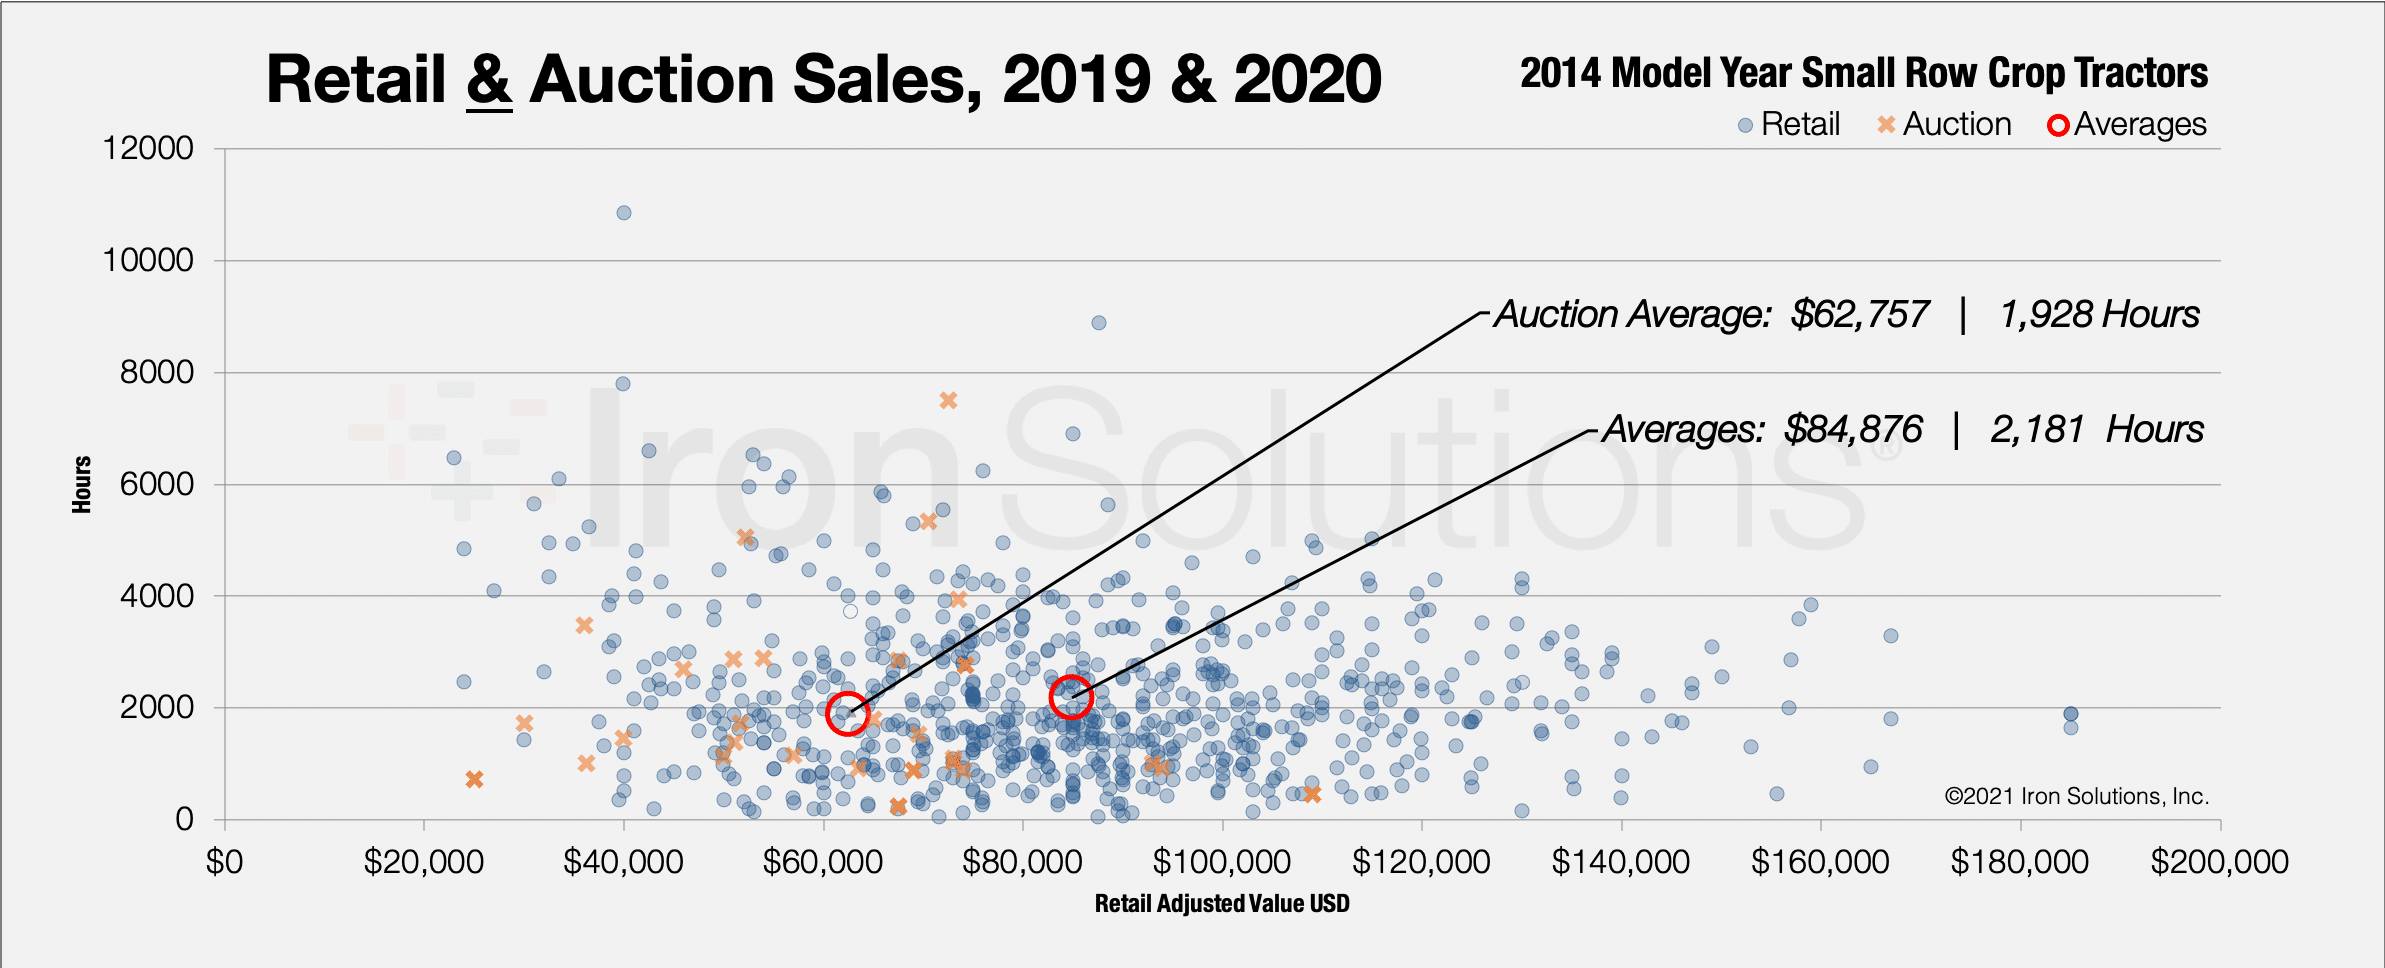 Auction & Retail Sales, 2019 & 2020 for 2014 Model Year Small Row Crop Tractors